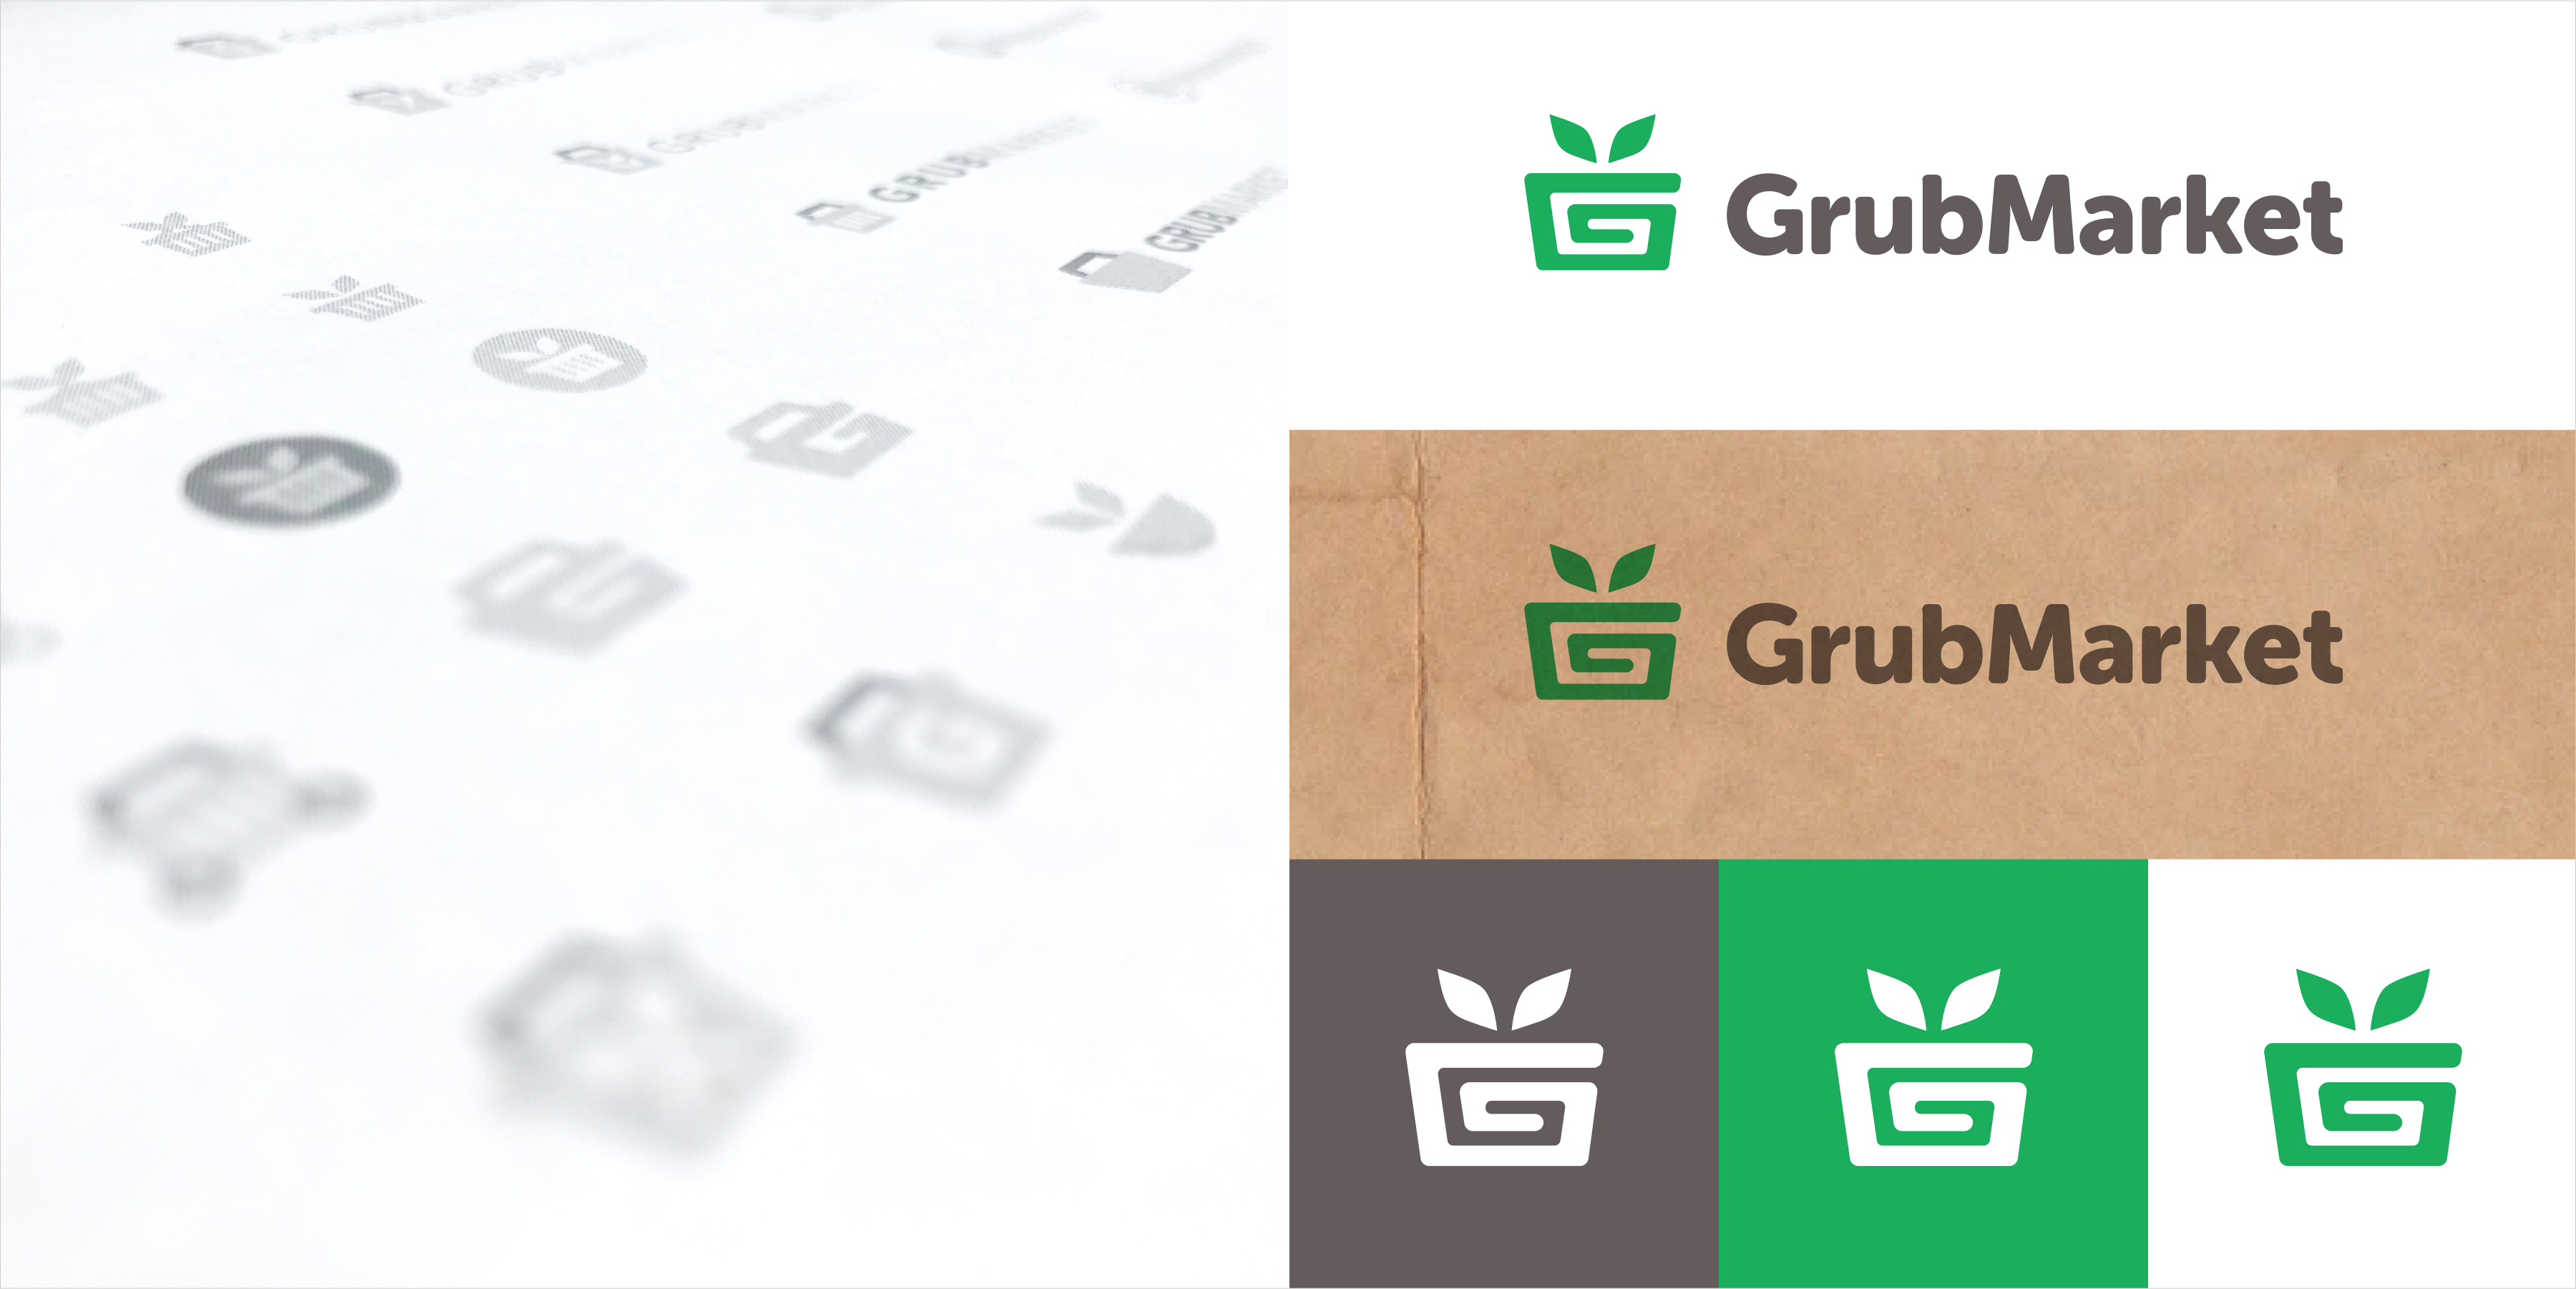 Explorations and final designs of the GrubMarket logo.